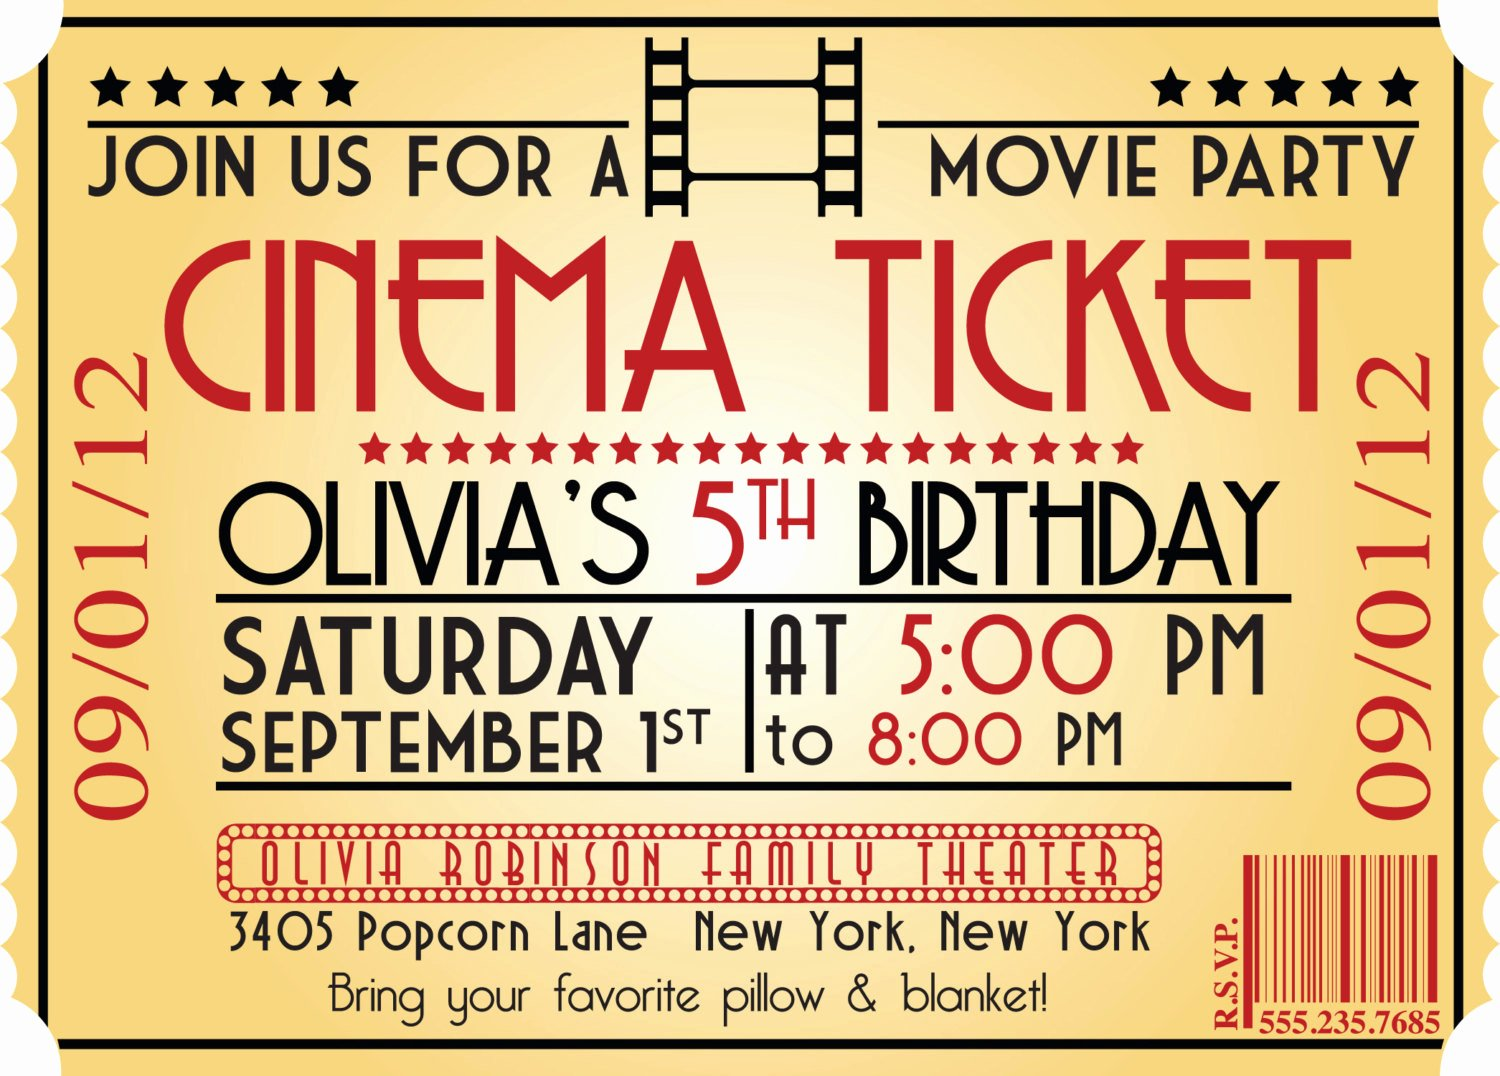 Movie Ticket Birthday Invitation Awesome Movie Ticket Birthday Invitations Ideas – Bagvania Free